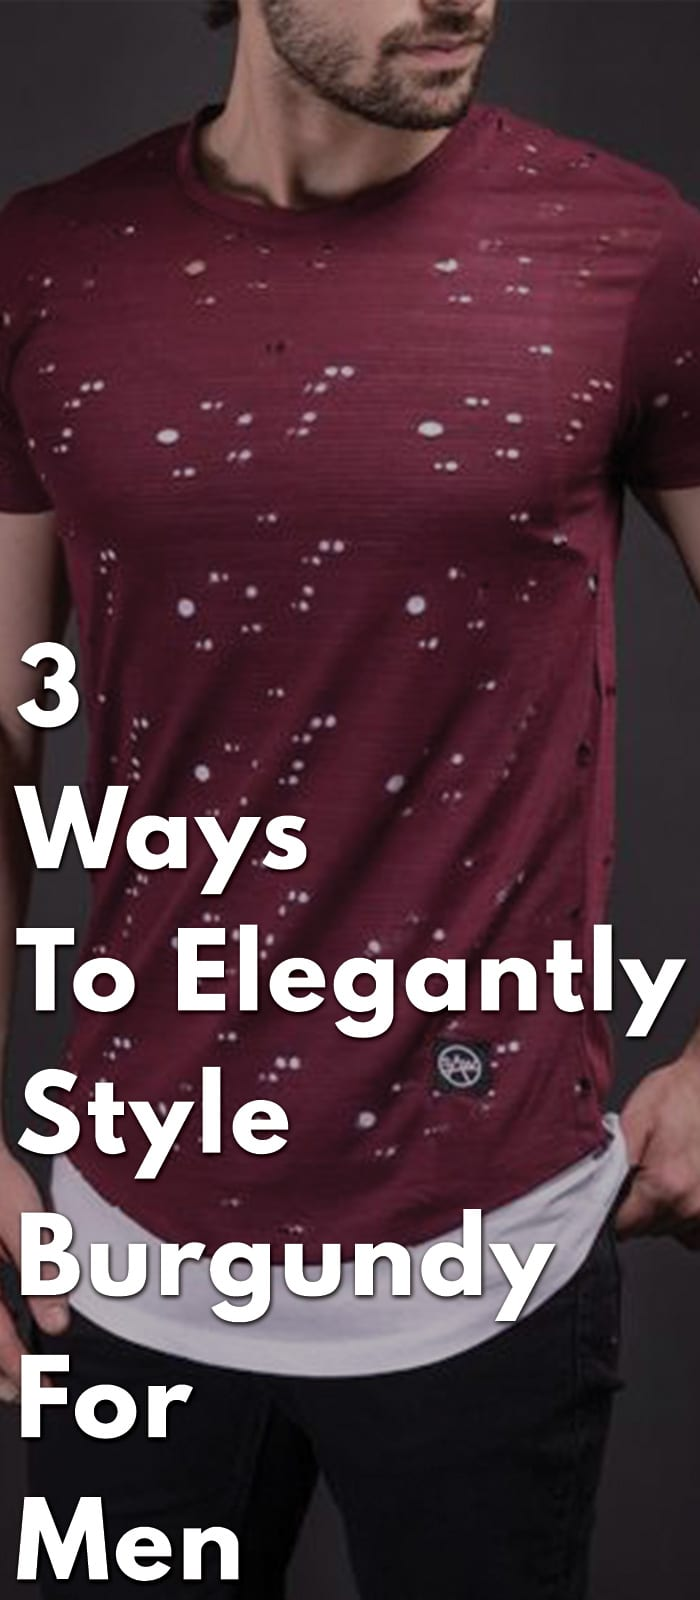 3-Ways-To-Elegantly-Style-Burgundy-For-Men--Burgundy-Guide